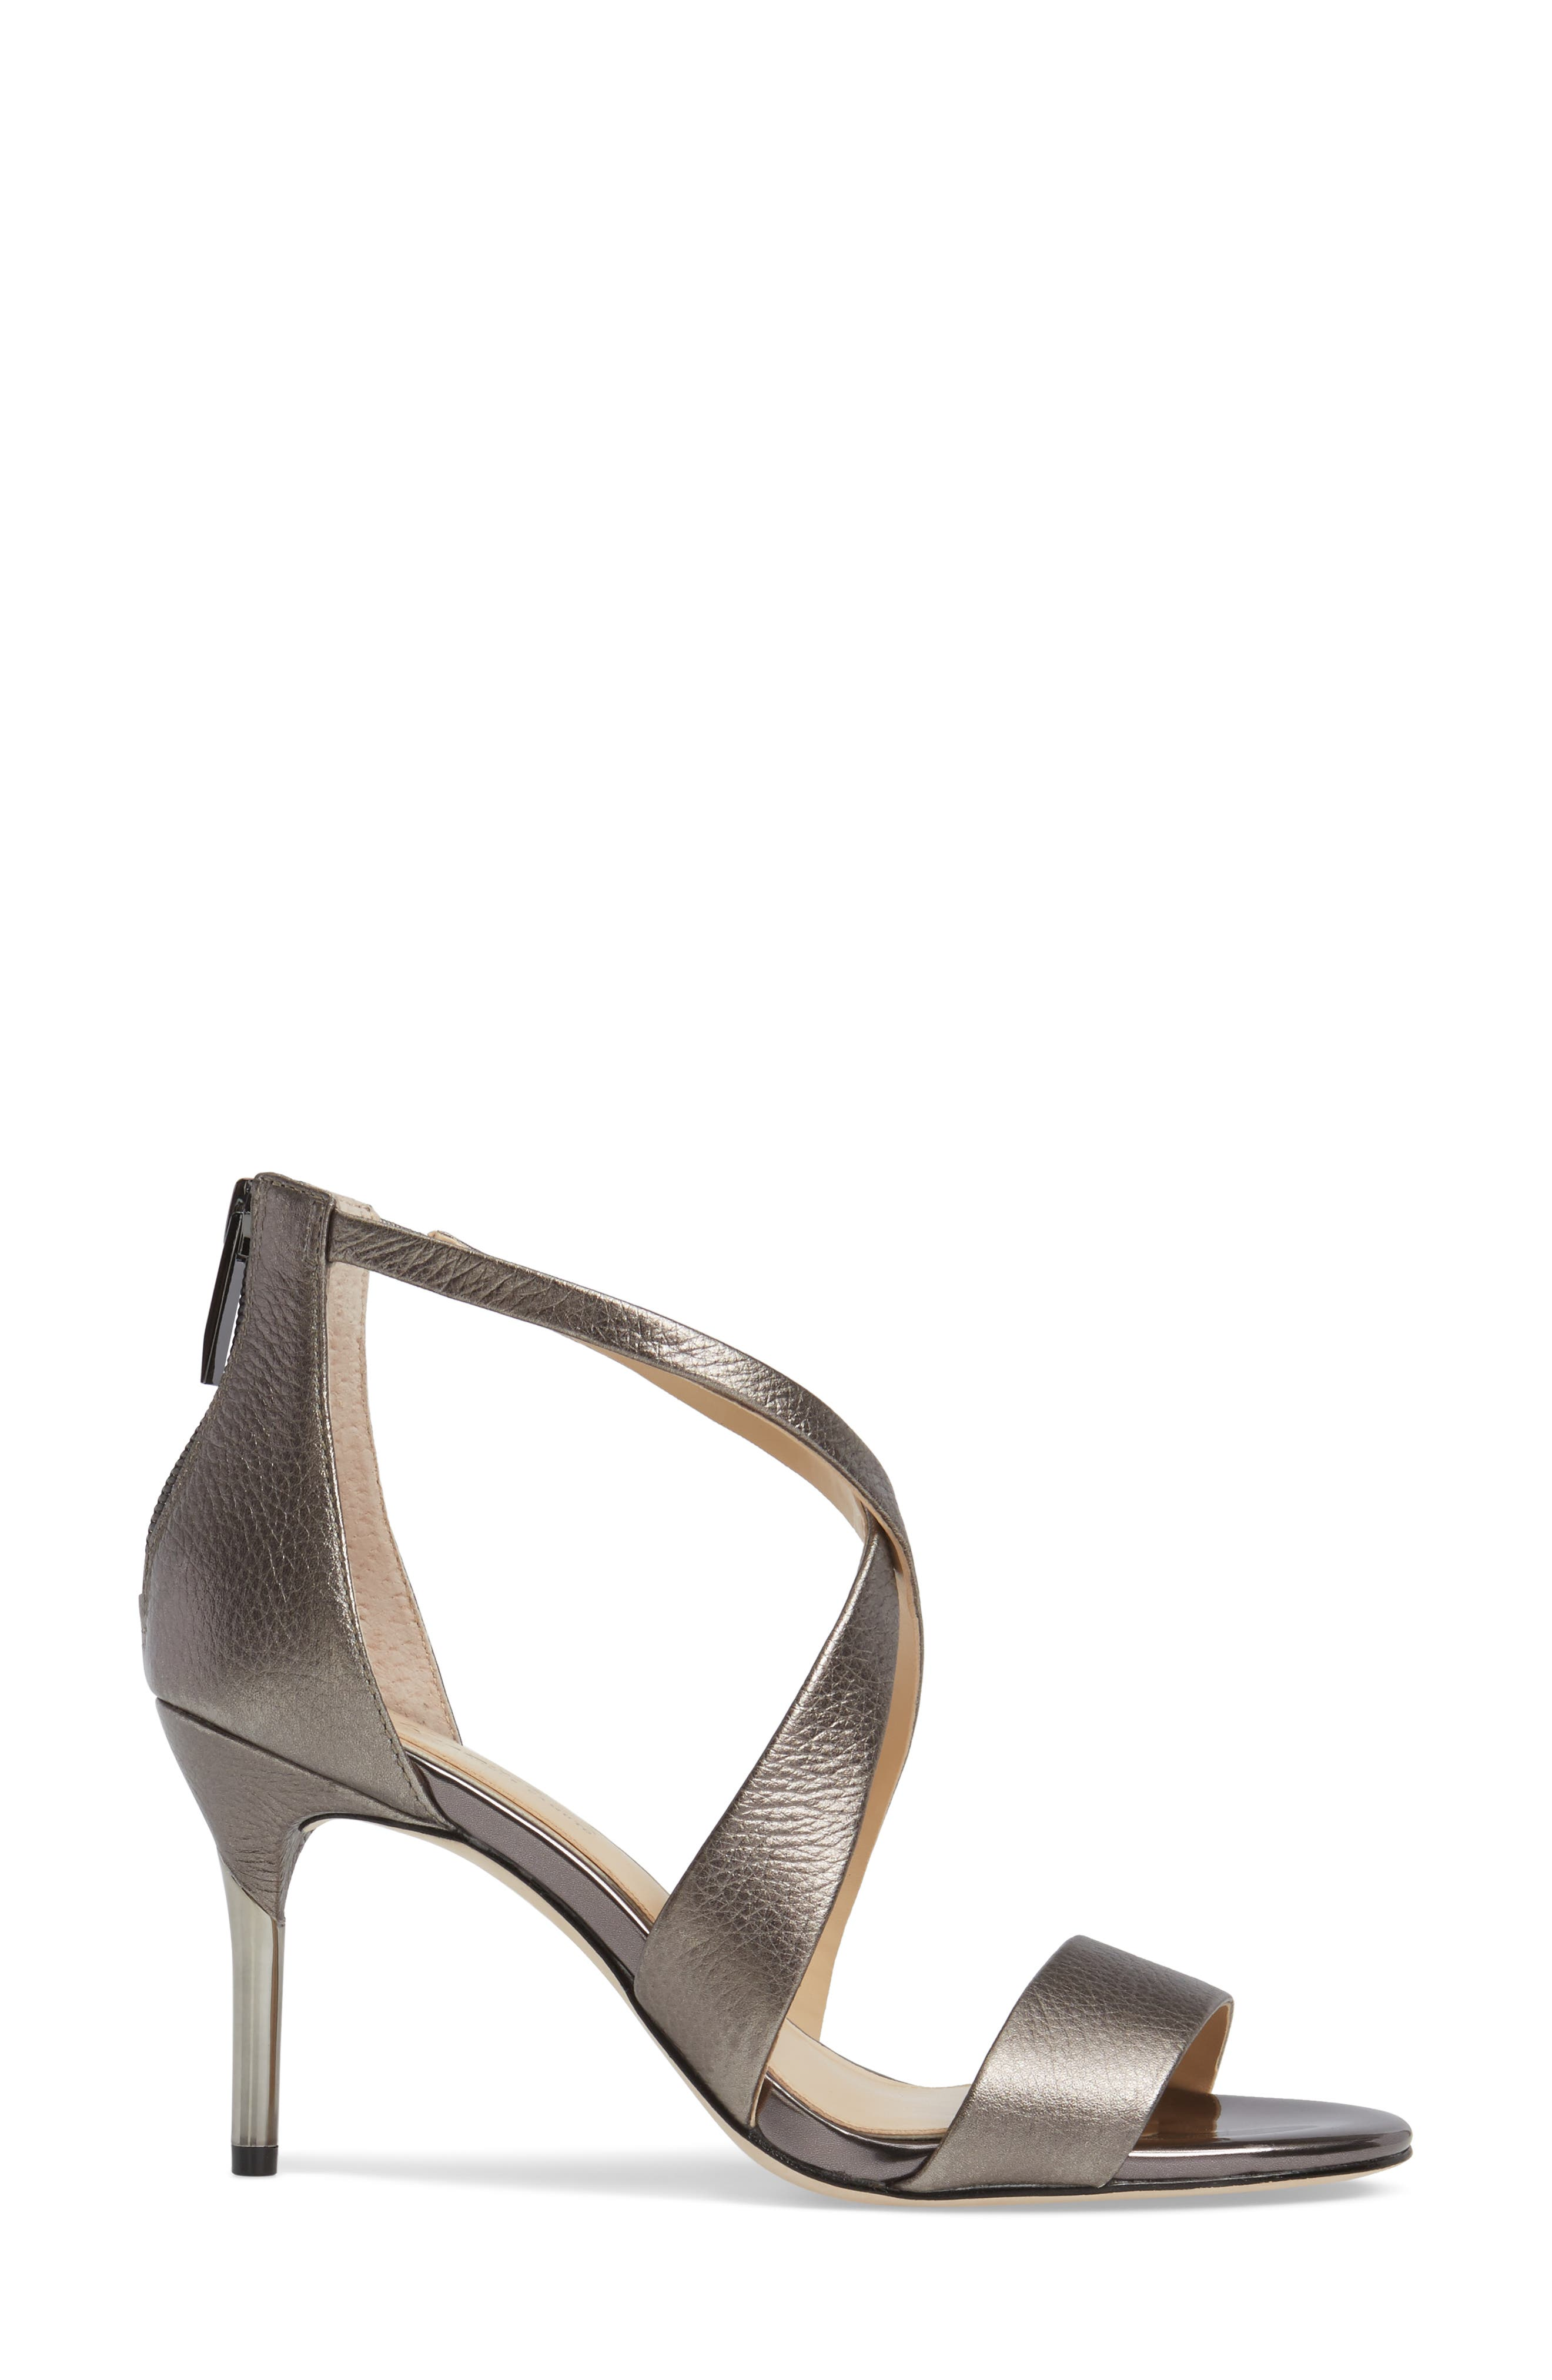 Alternate Image 3  - Imagine by Vince Camuto 'Pascal 2' Strappy Evening Sandal (Women)